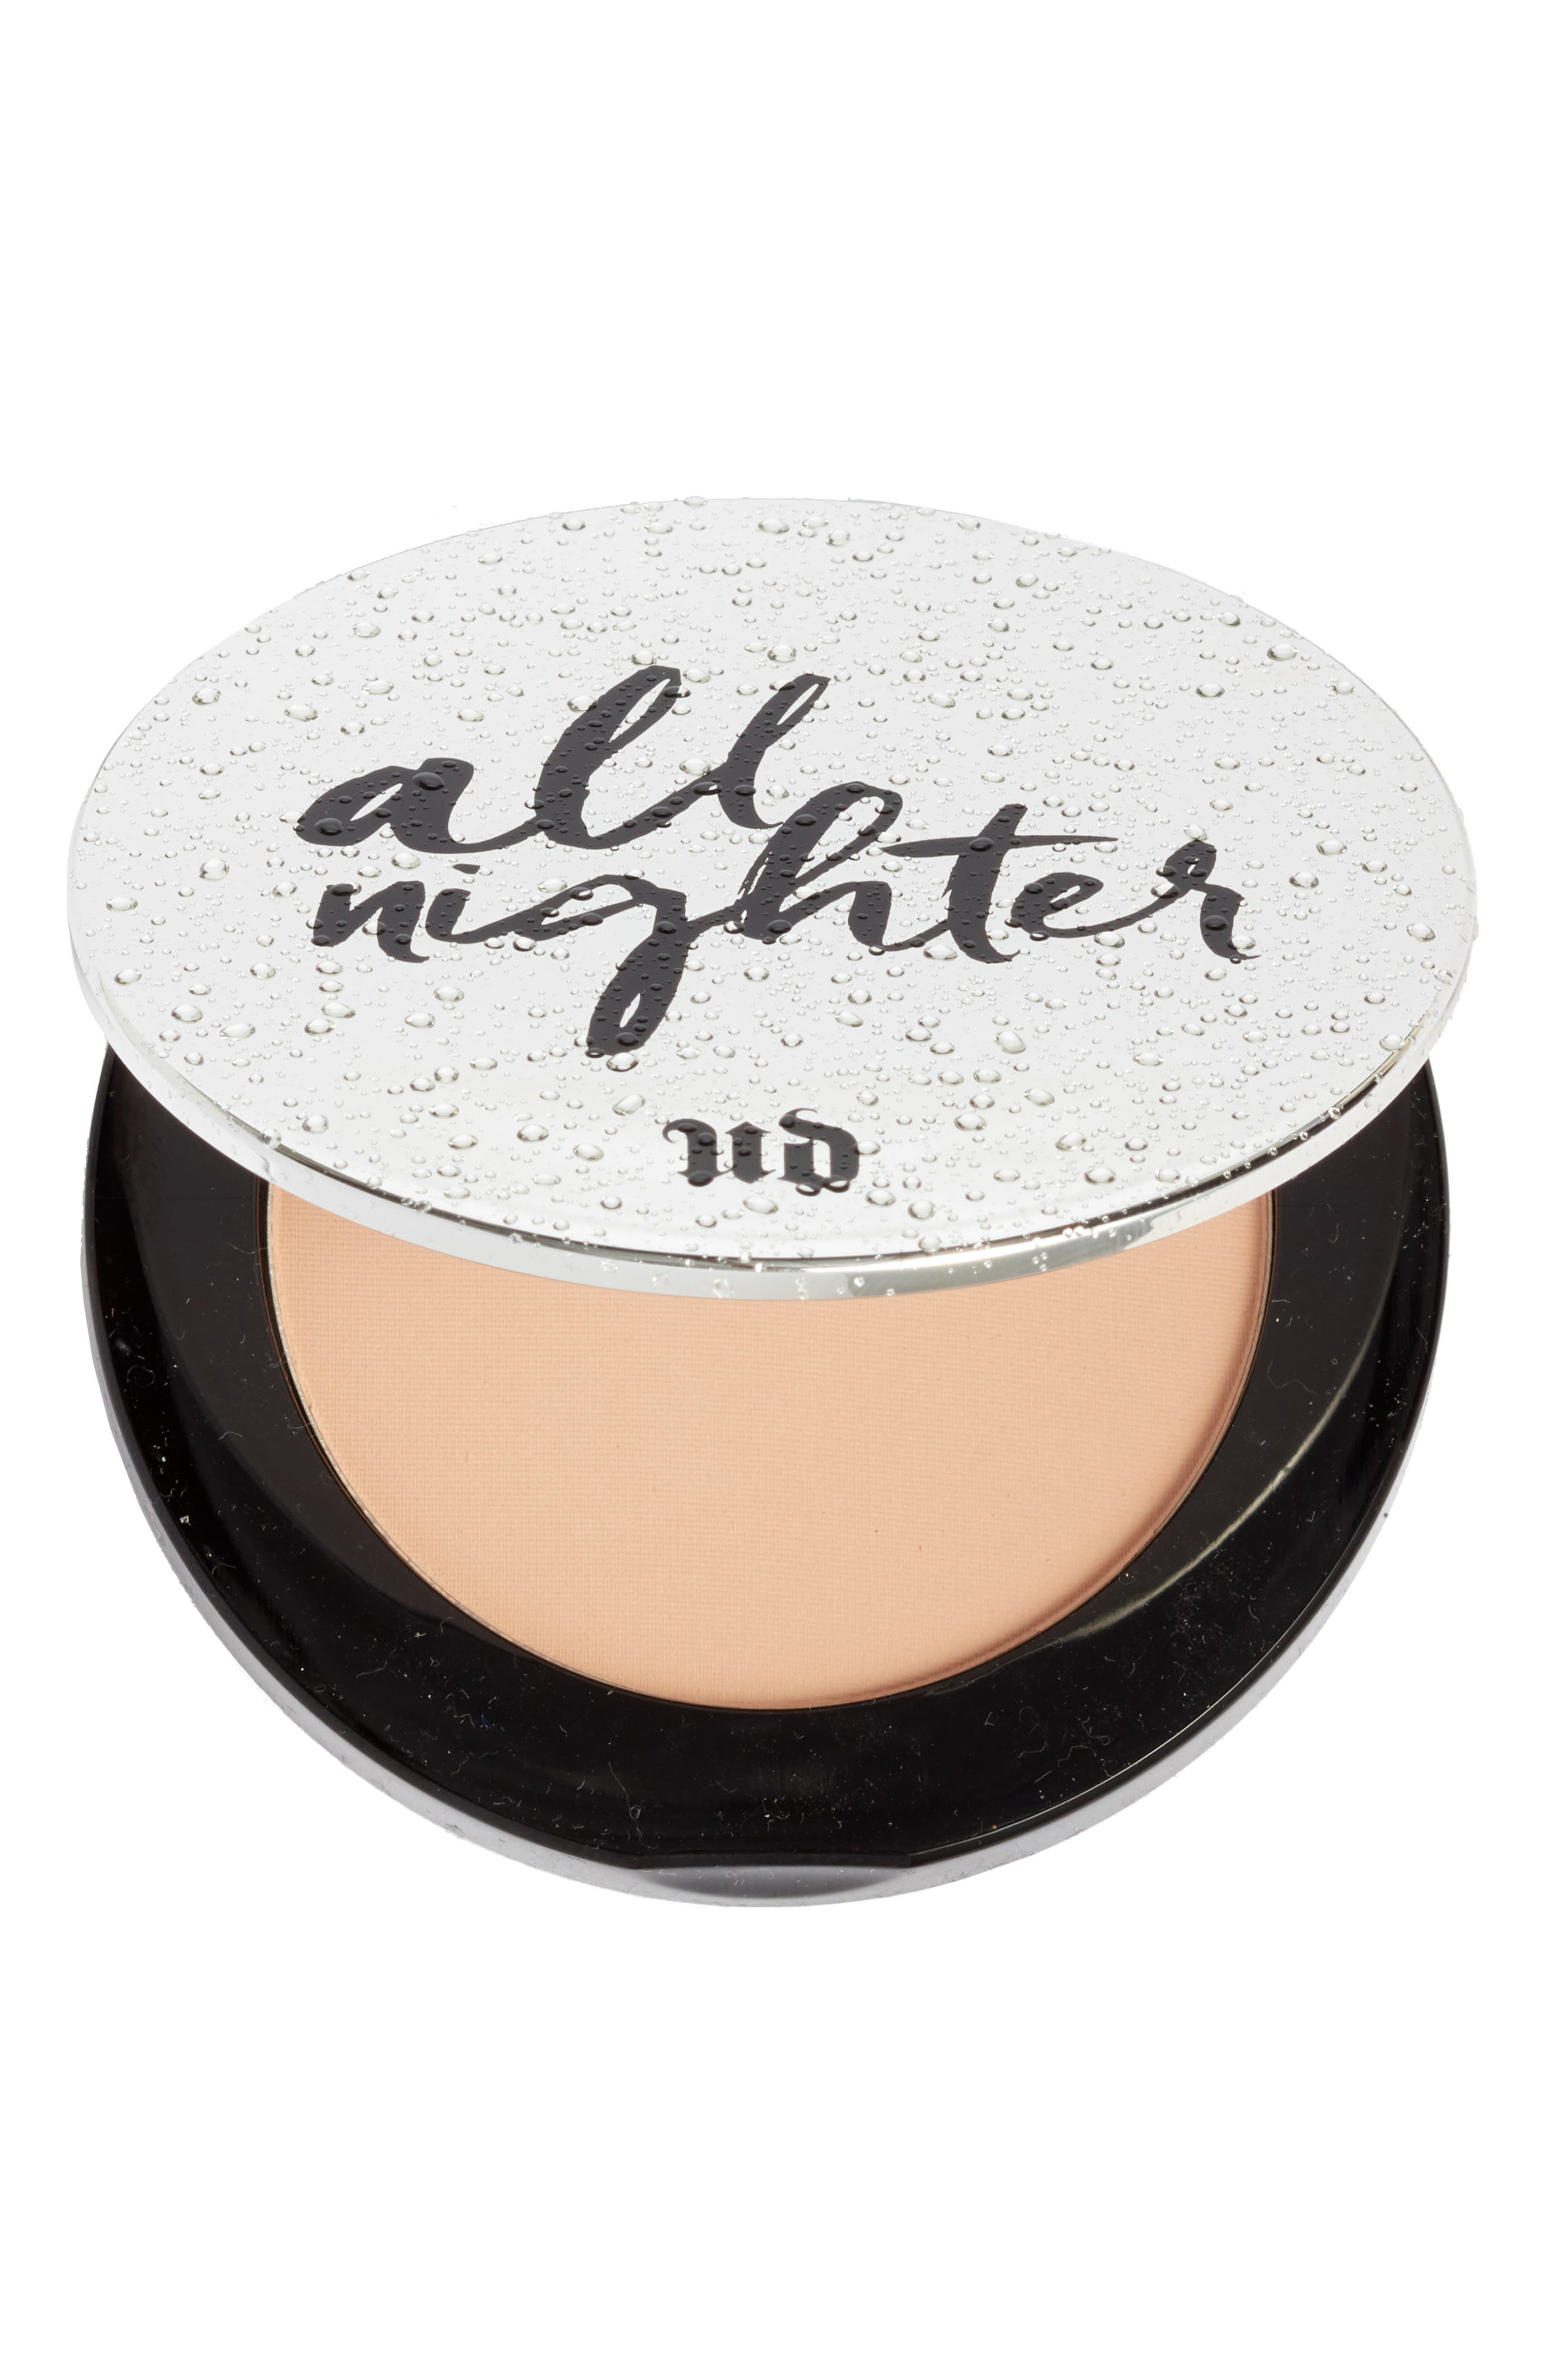 All Nighter Waterproof Setting Powder,                             Main thumbnail 1, color,                             No Color